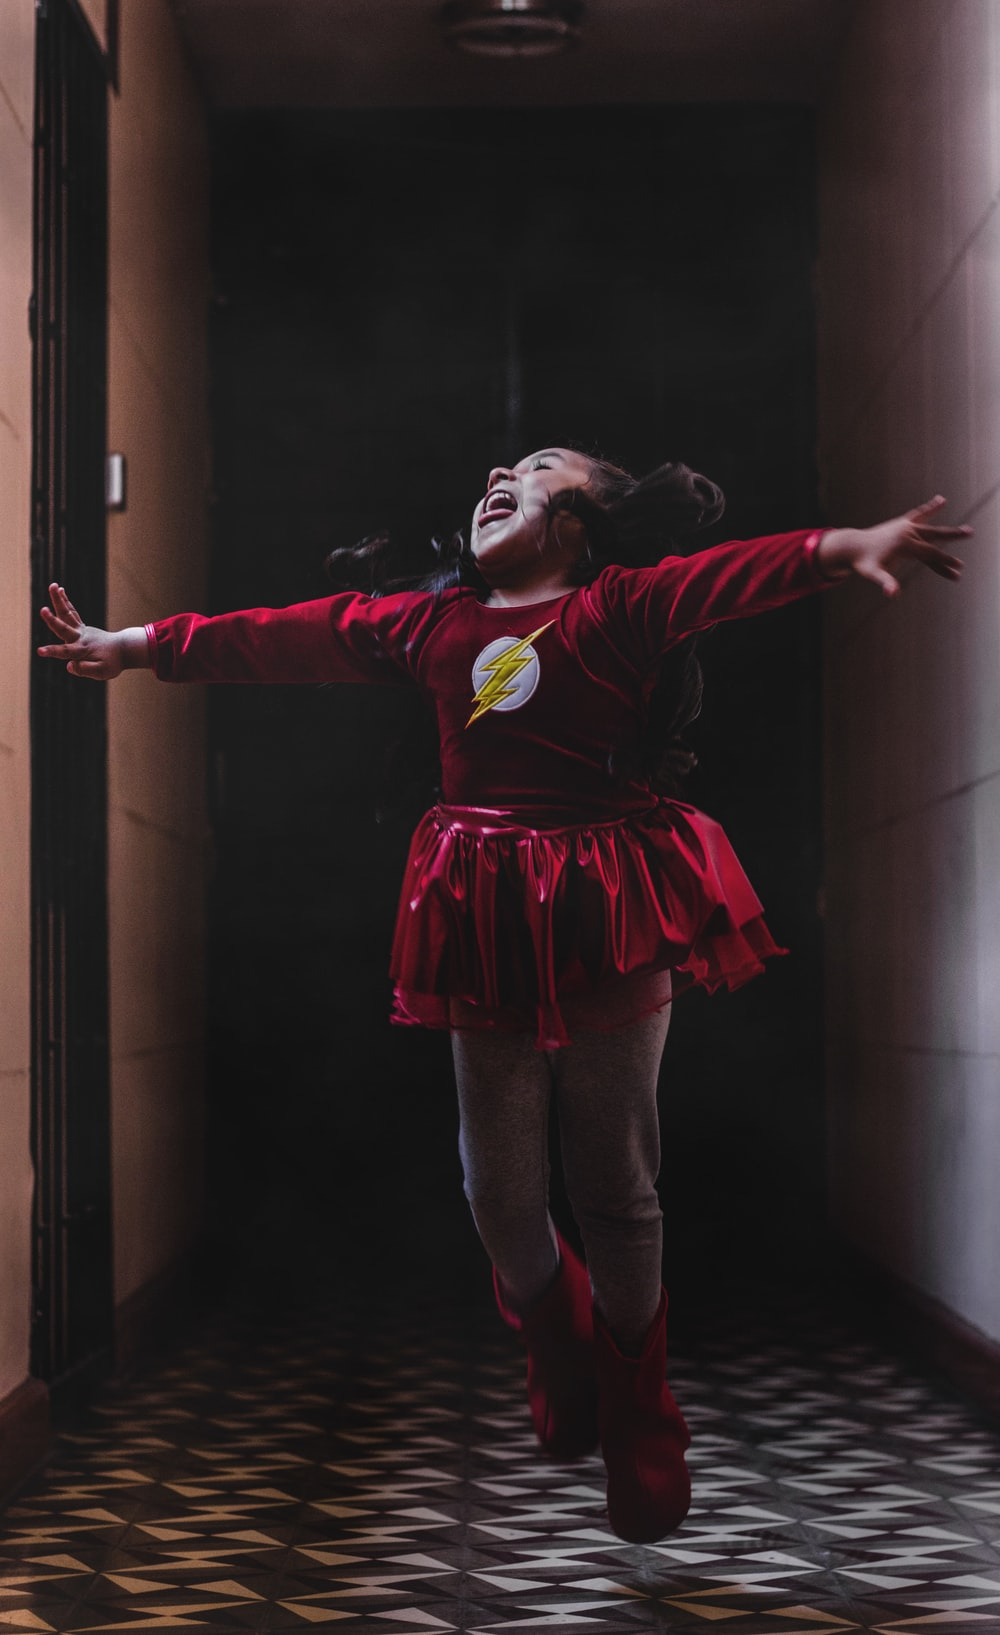 laughing and jumping girl in DC Flash costume in room